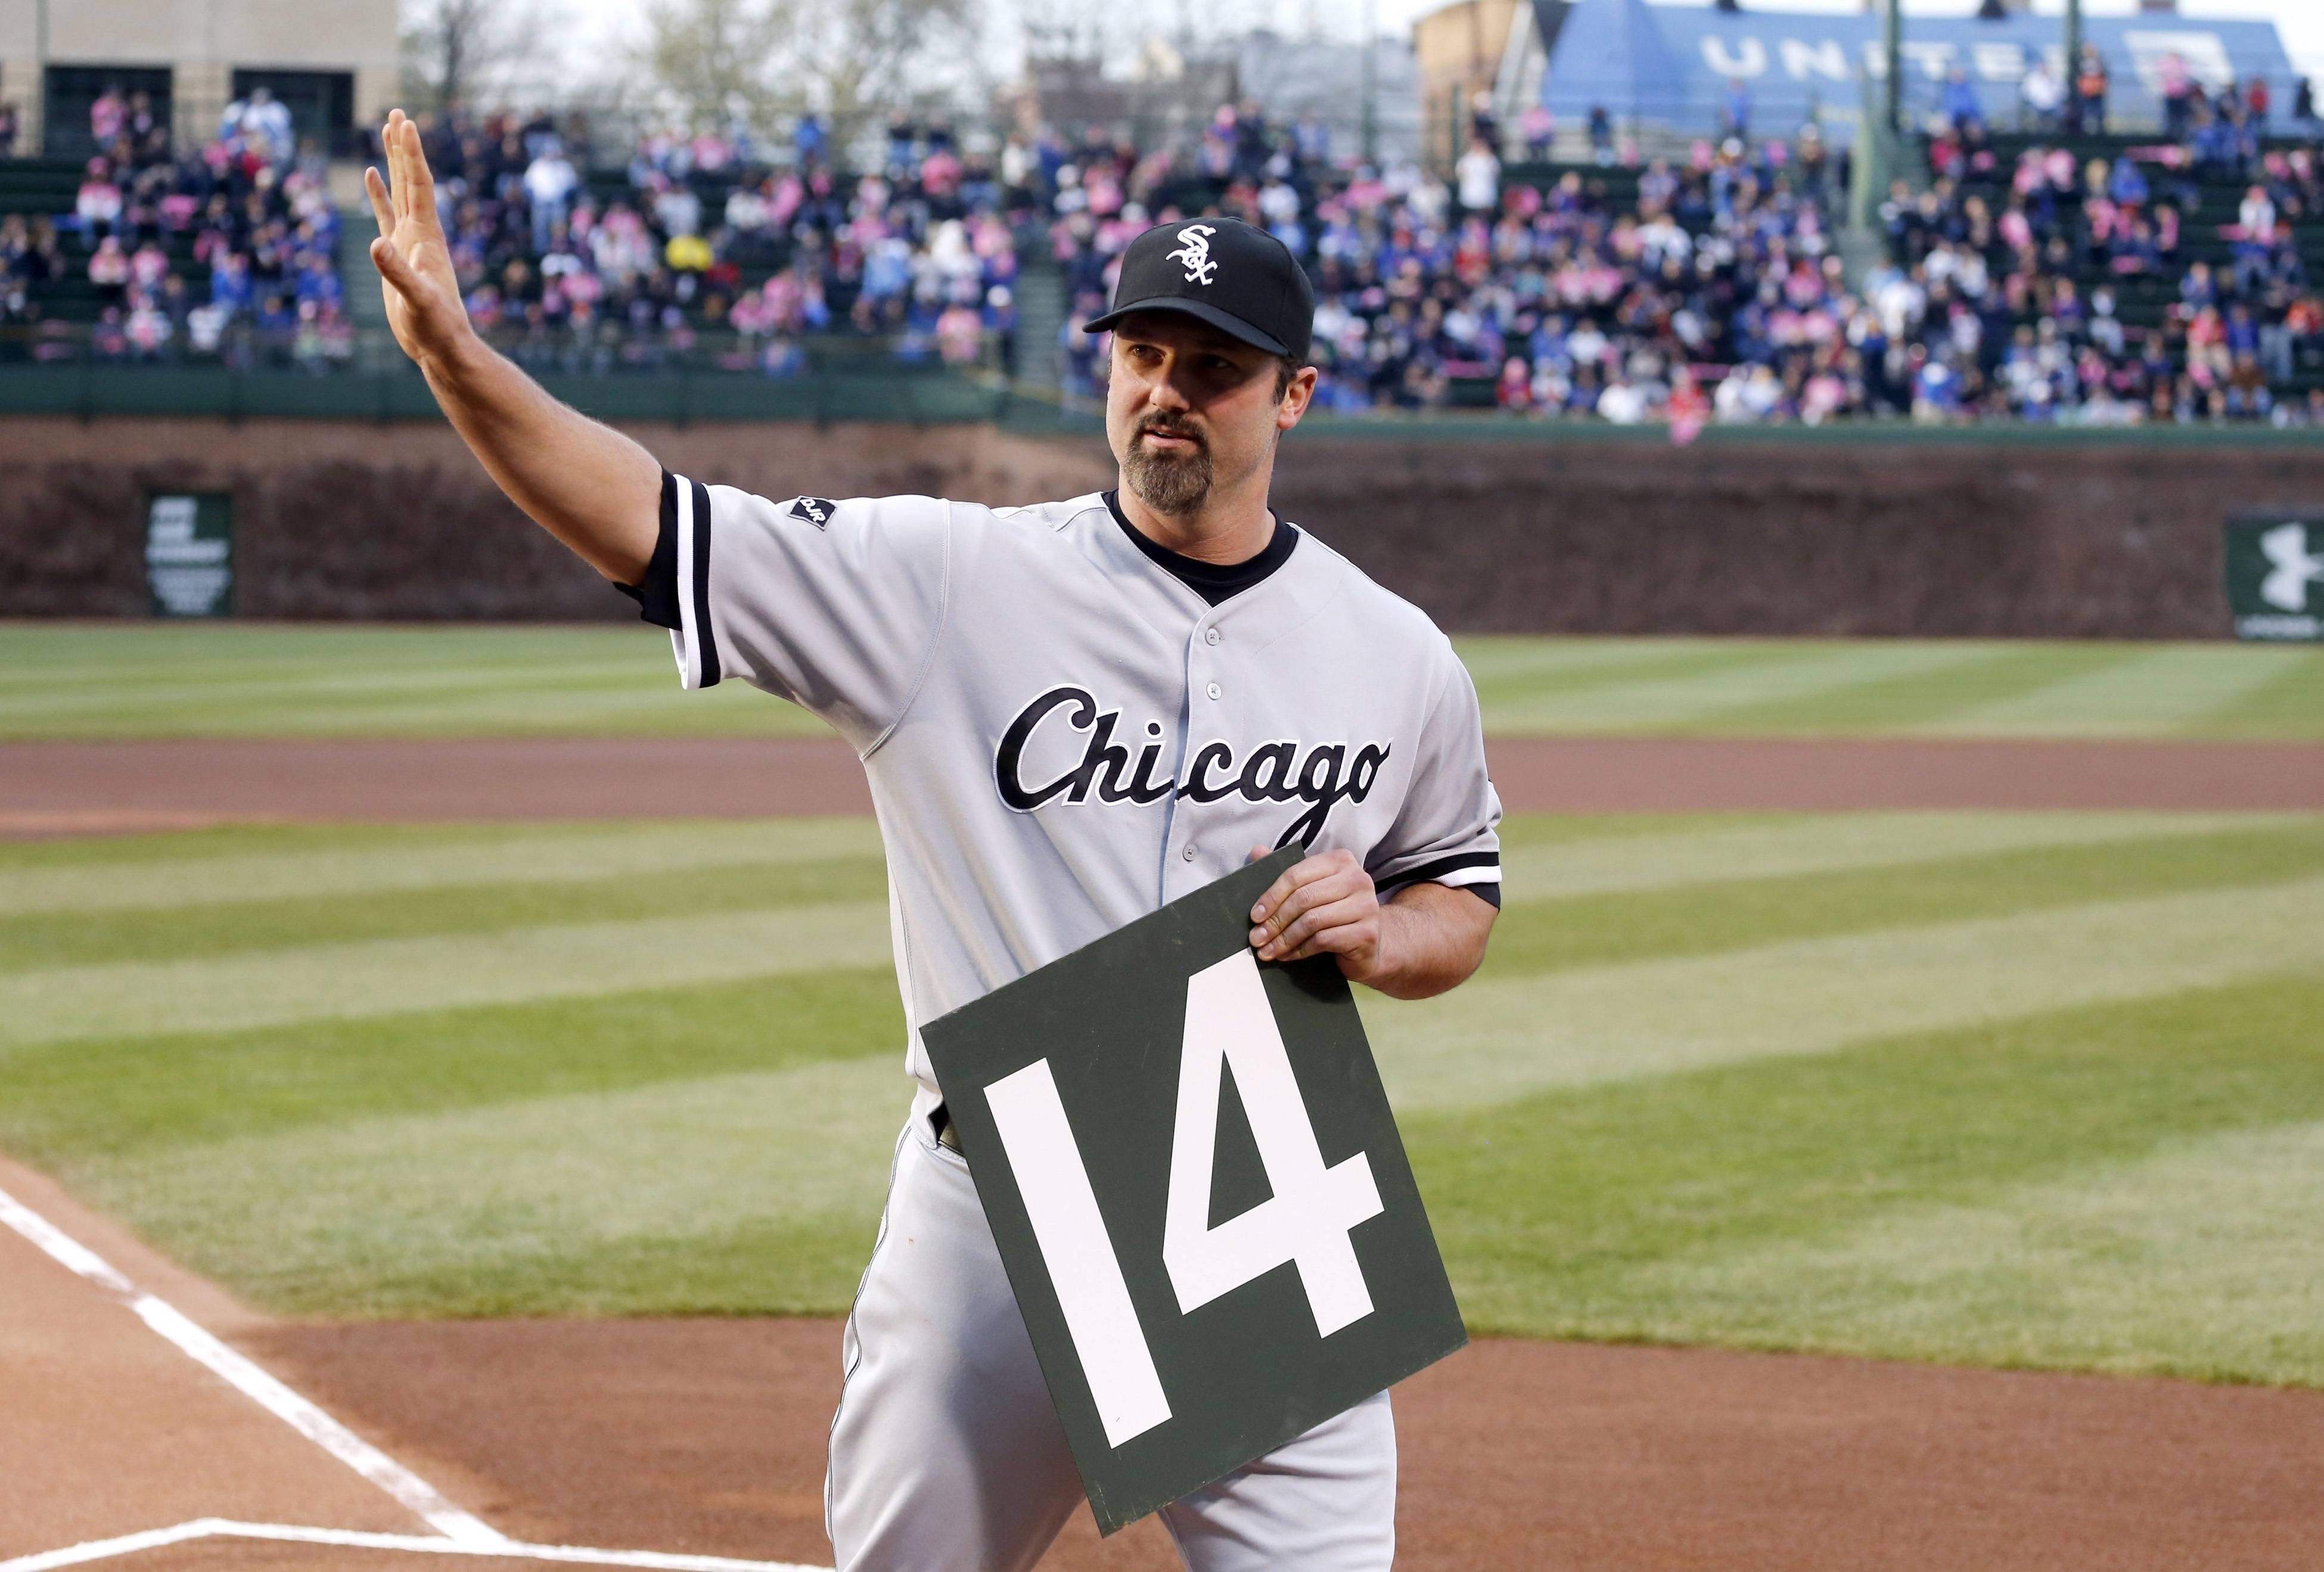 Chicago White Sox's Paul Konerko waves to the crowd after receiving a retirement gift from Chicago Cubs starting pitcher Jeff Samardzija of his number from the Wrigley Field scoreboard before a baseball game between the two teams Tuesday, May 6, 2014, in Chicago. (AP Photo/Charles Rex Arbogast)